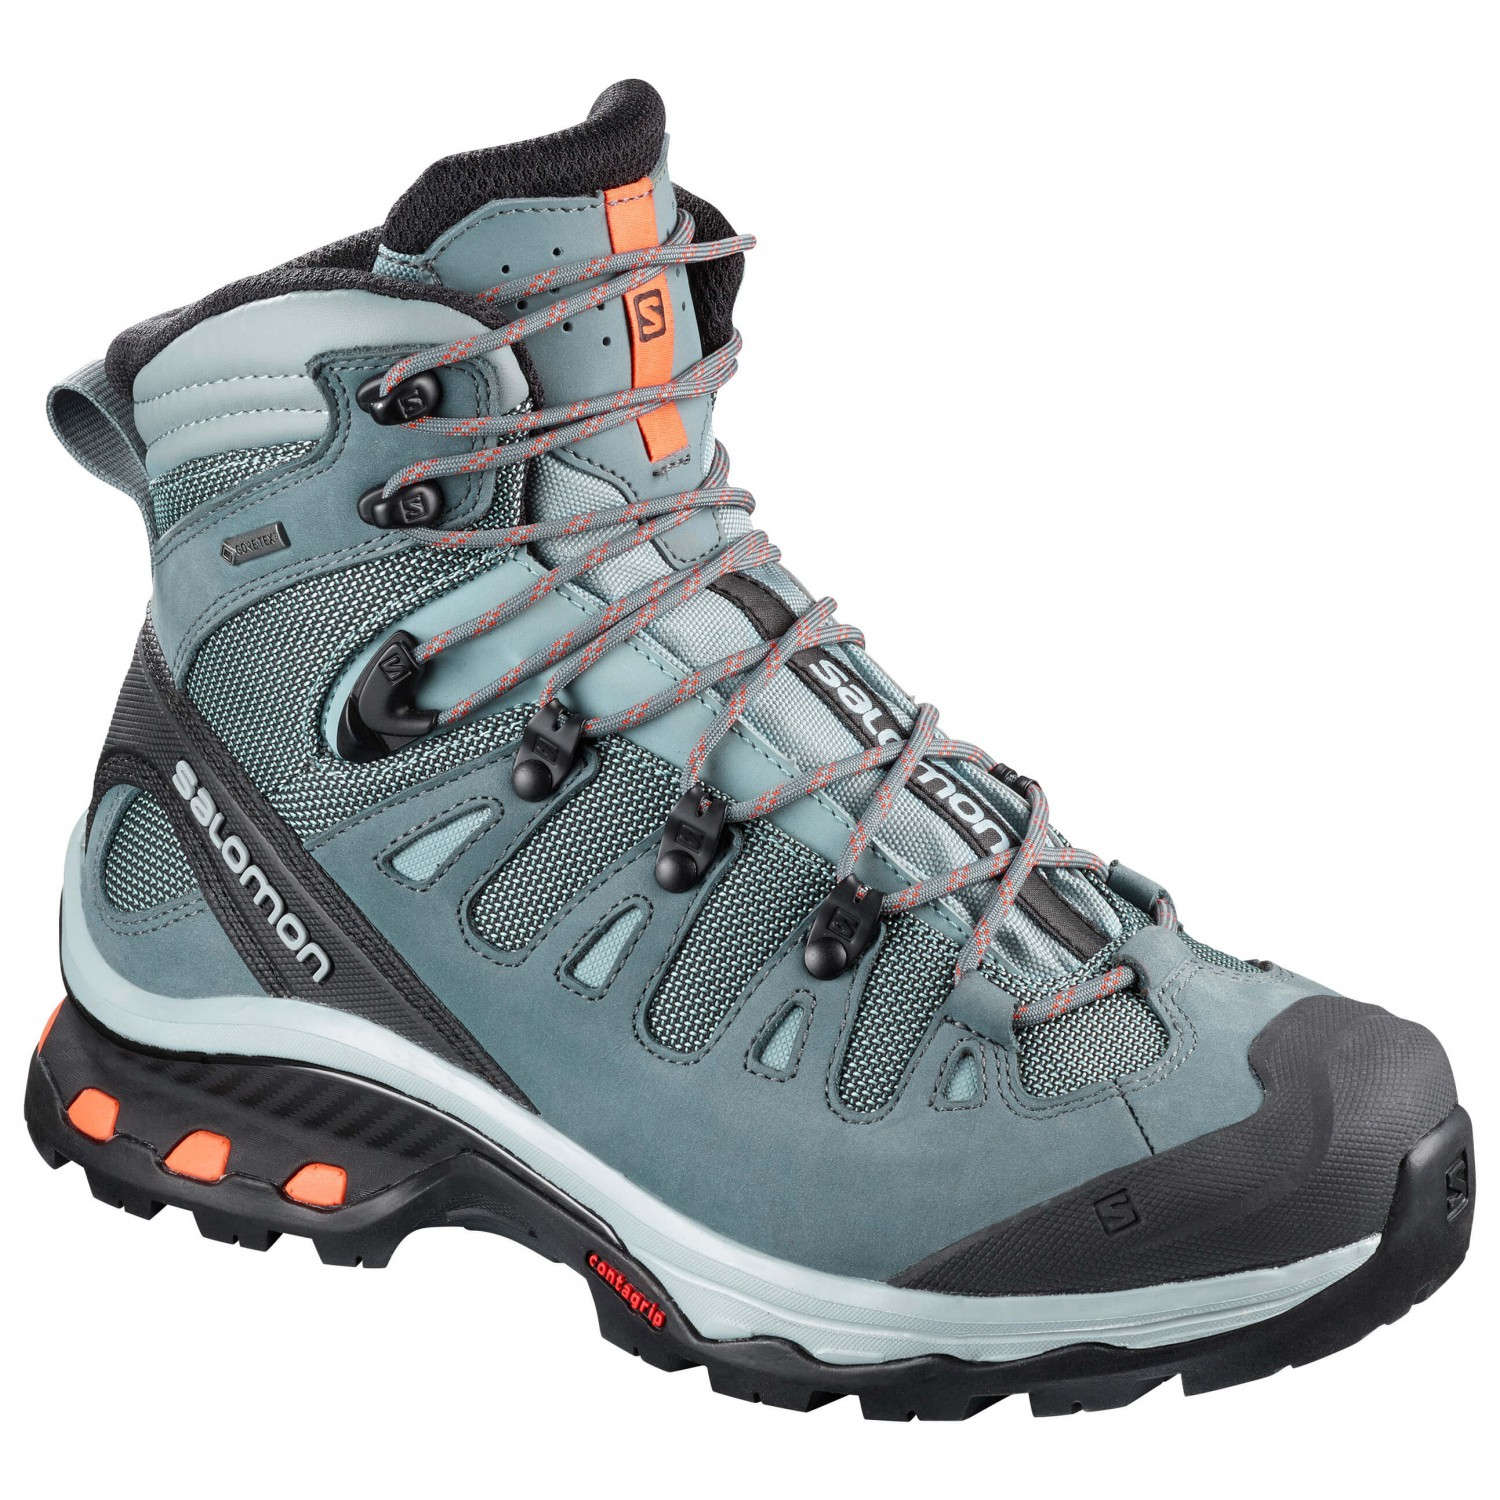 Salomon - Women's Quest 4D 3 Gtx - Walking boots - Lead / Stormy Weather /  Bird Of Paradise | 8 (UK)